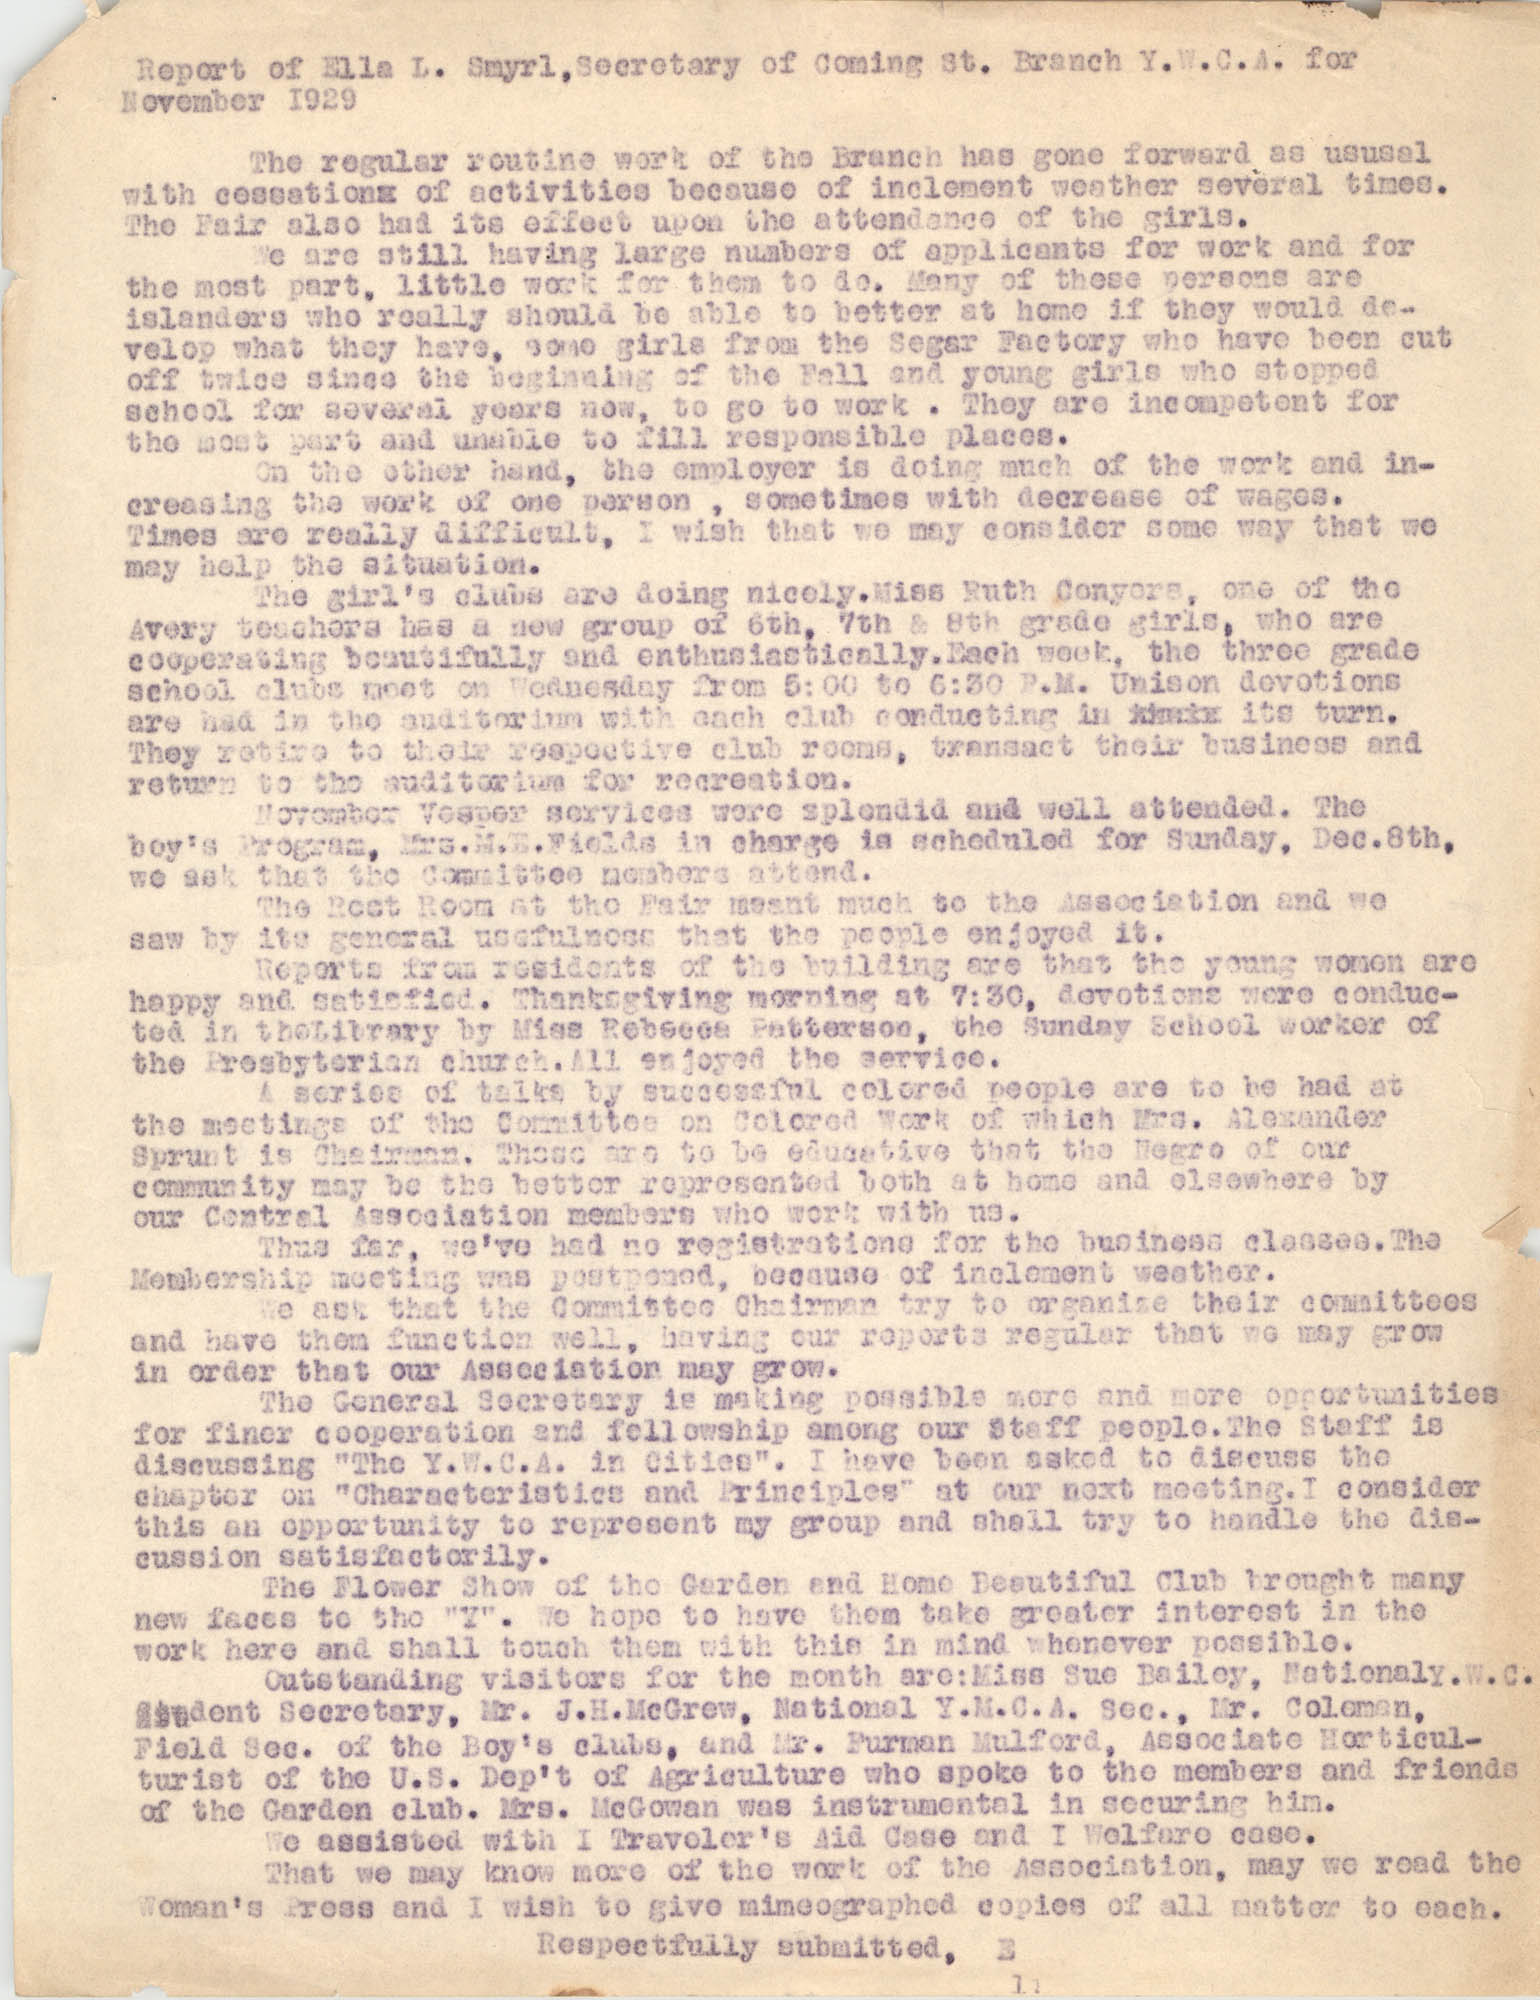 Monthly Report for the Coming Street Y.W.C.A., November 1929